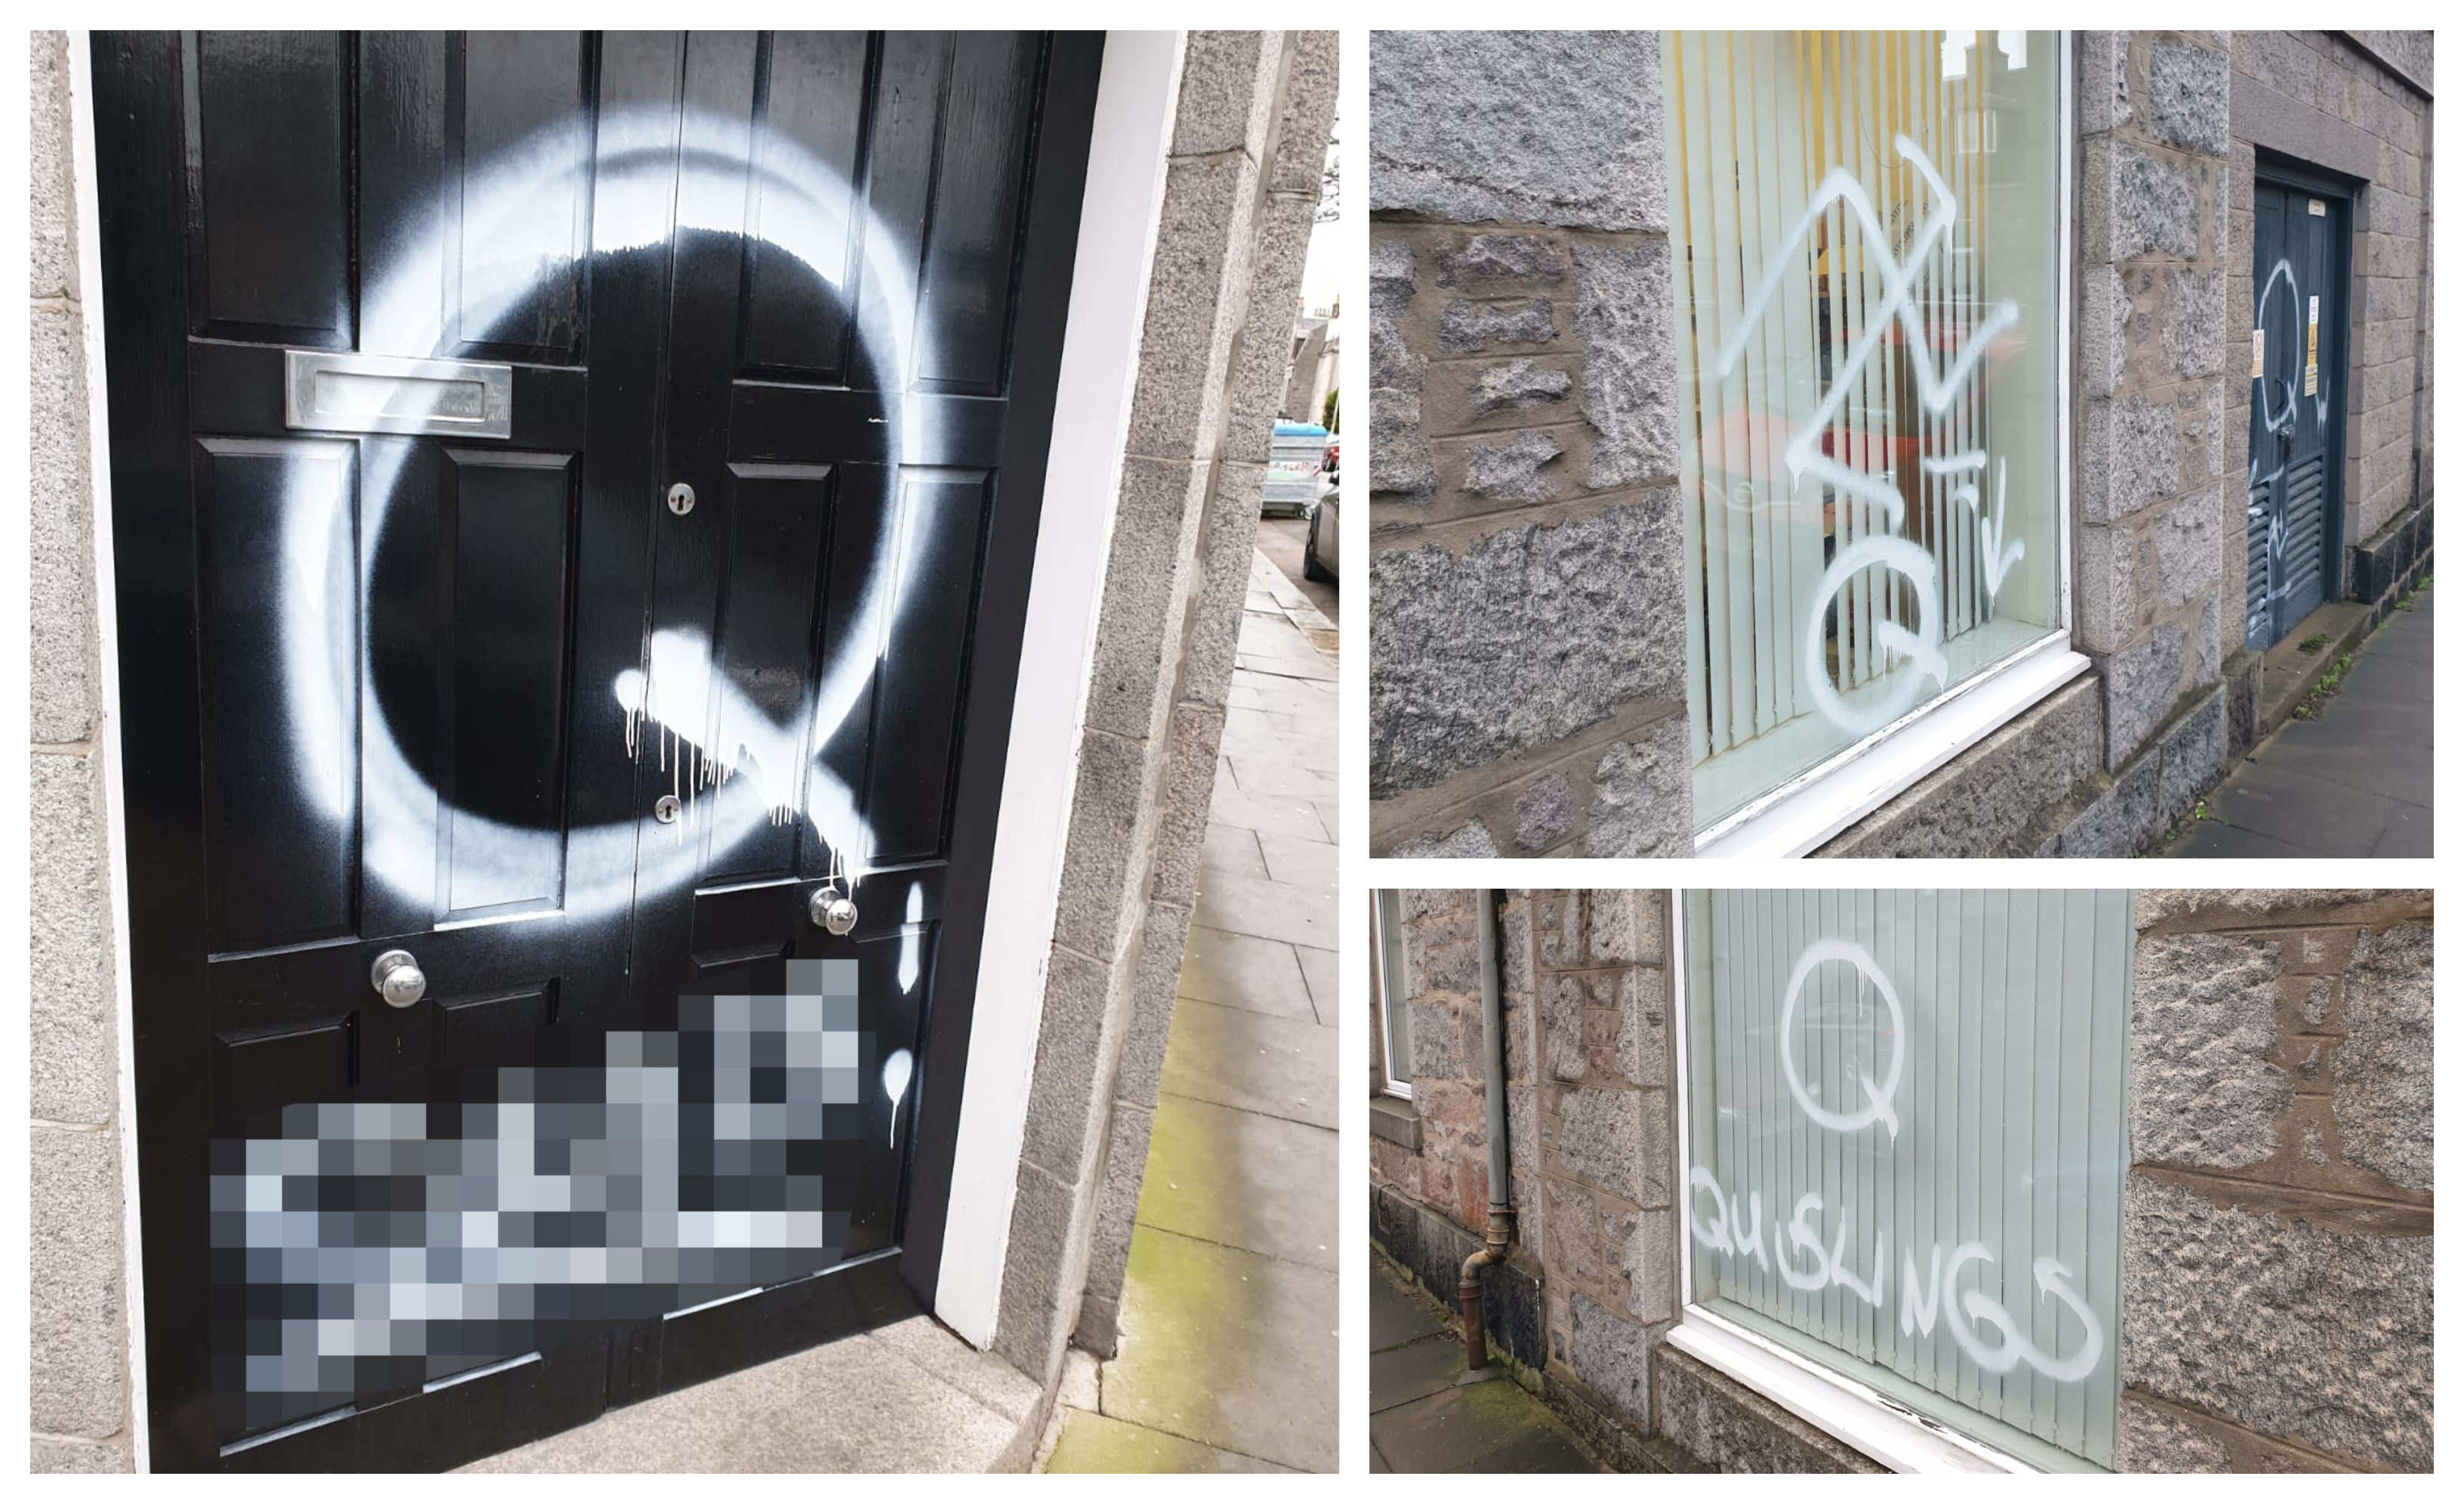 Tom Mason's parliamentary office in Aberdeen has been vandalised. Pictures: Twitter